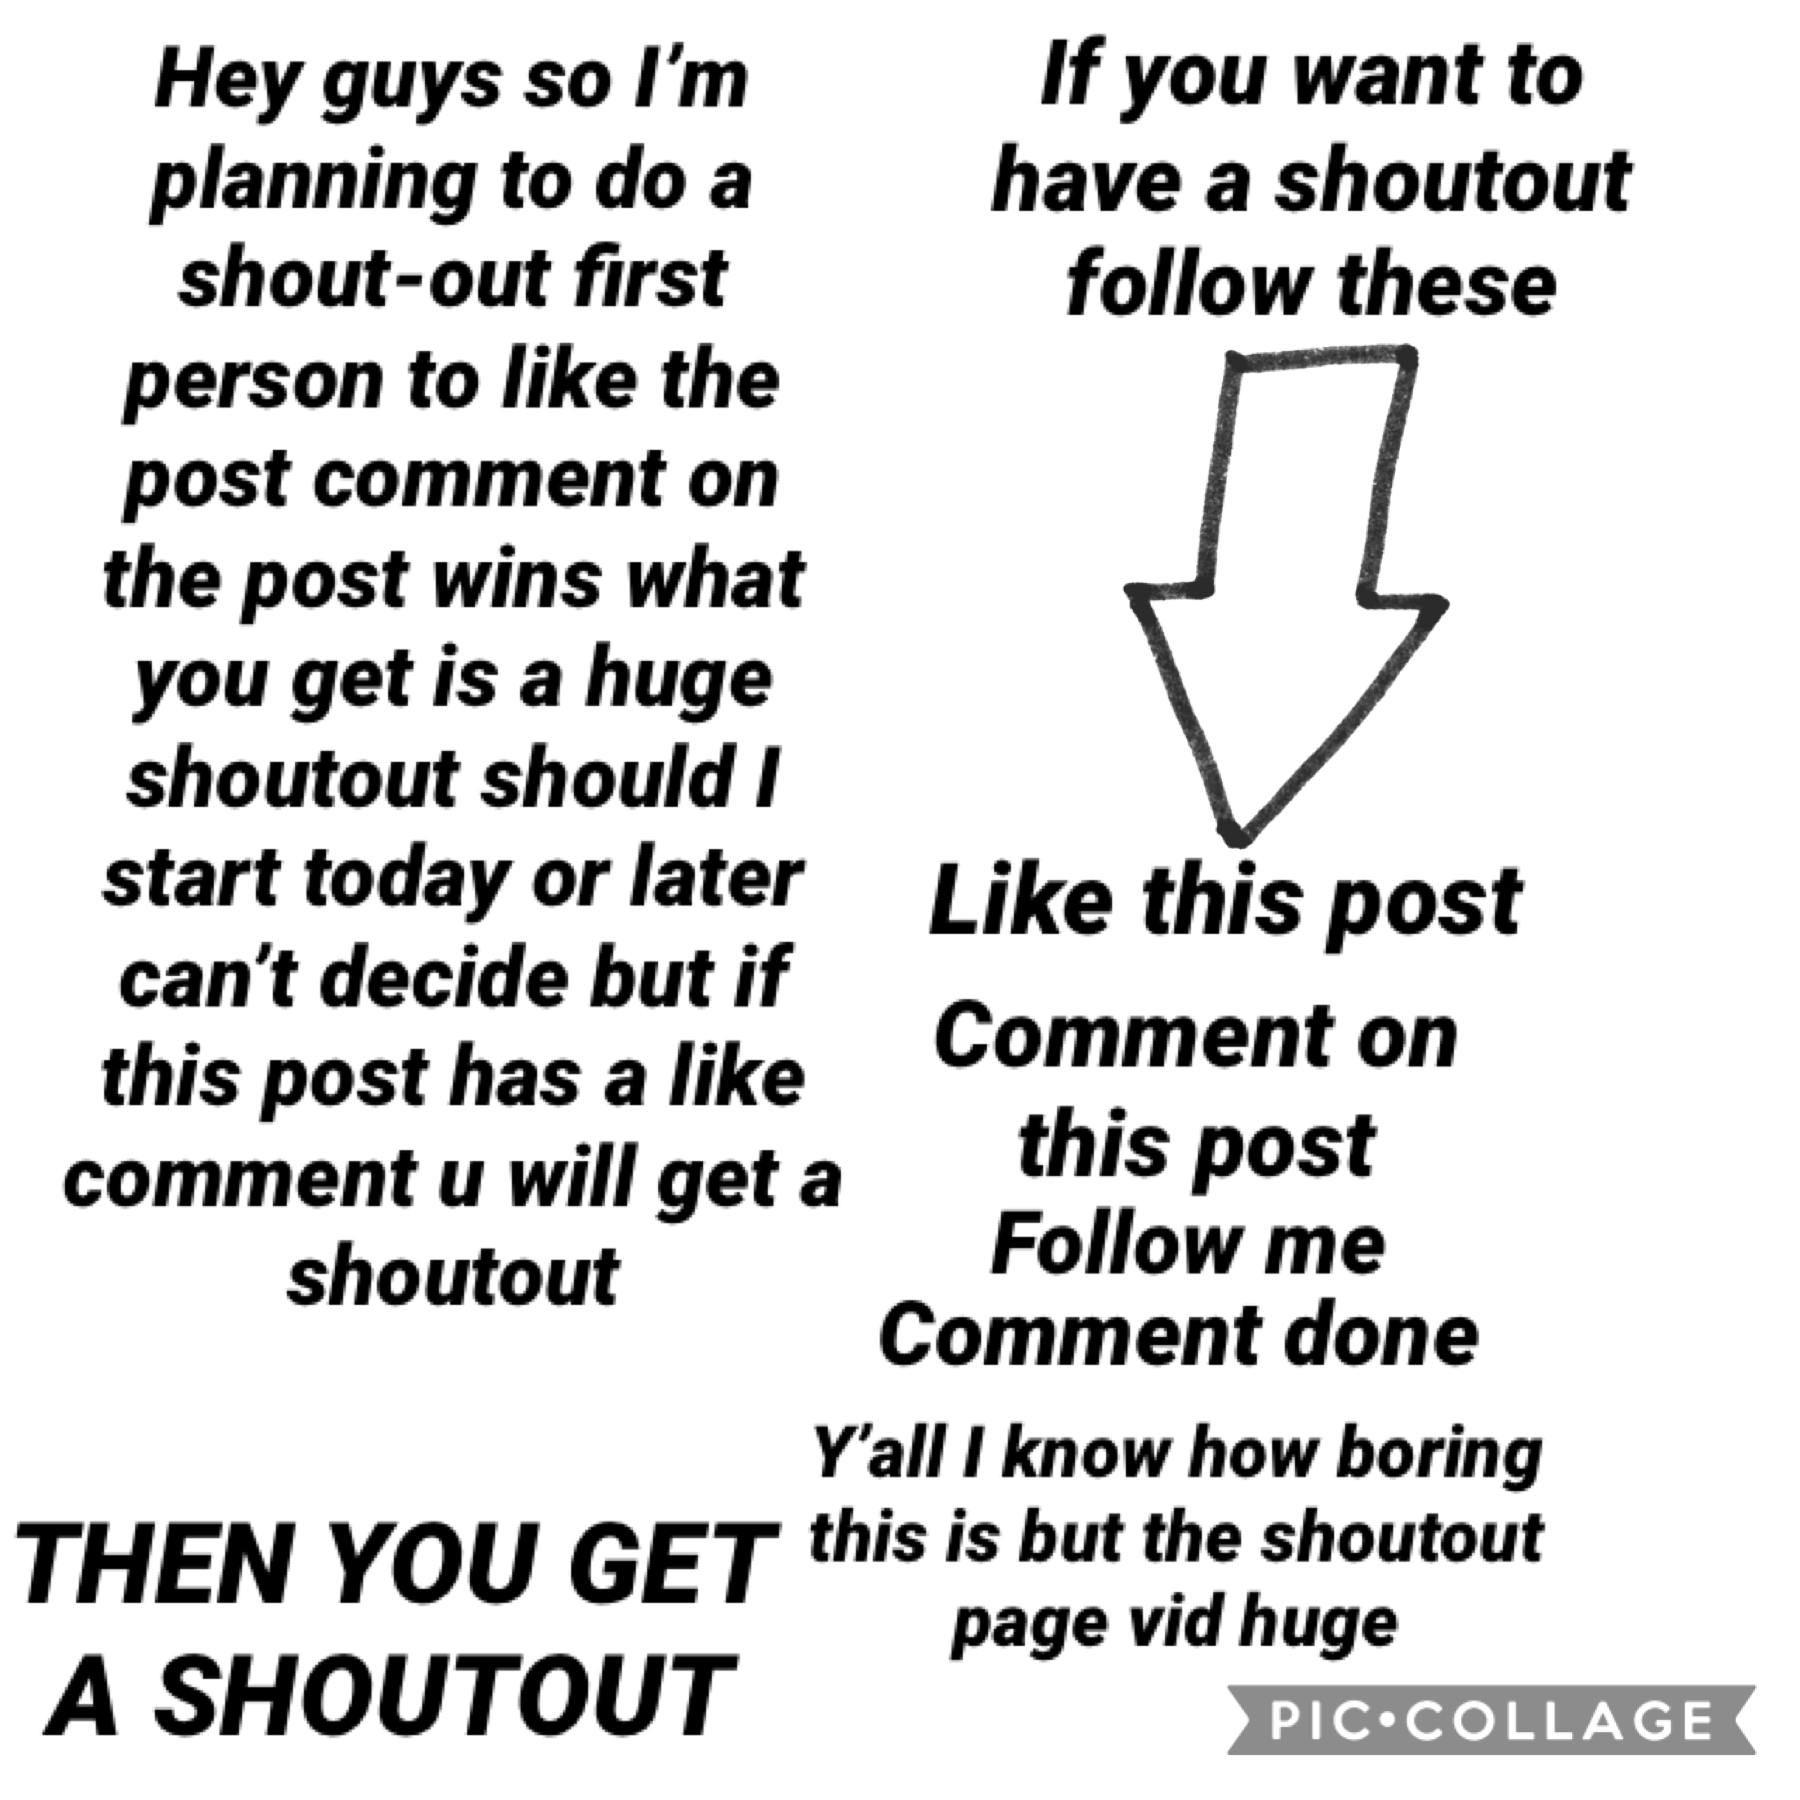 Read it carefully to get a shoutout any question comment and I will answer them ASAP